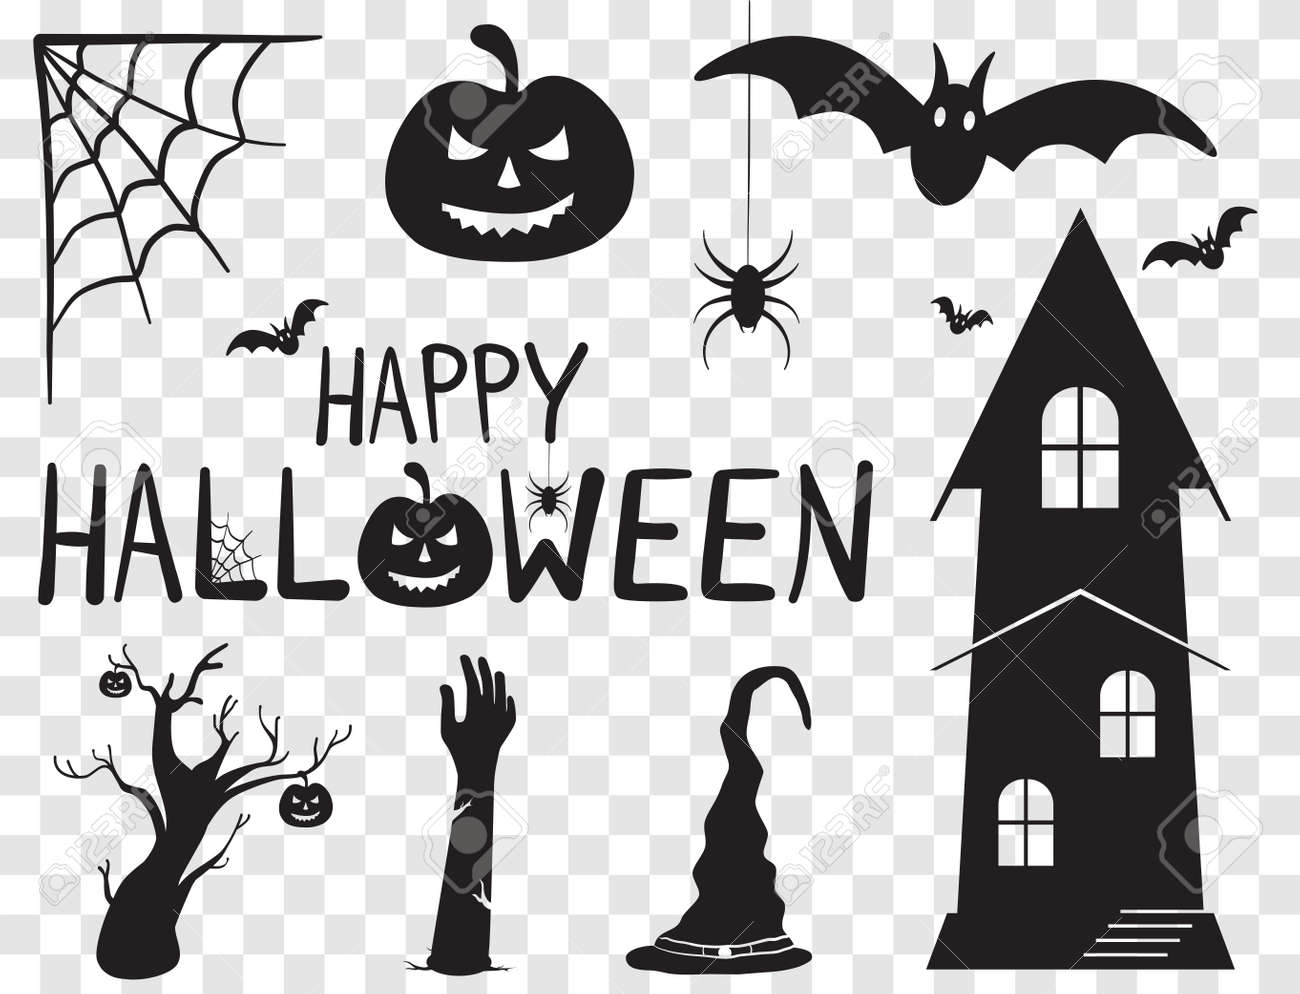 Happy Halloween Text Banner and Silhouette Horror Characters. Vector Illustration Set With Transparent Background - 156370536